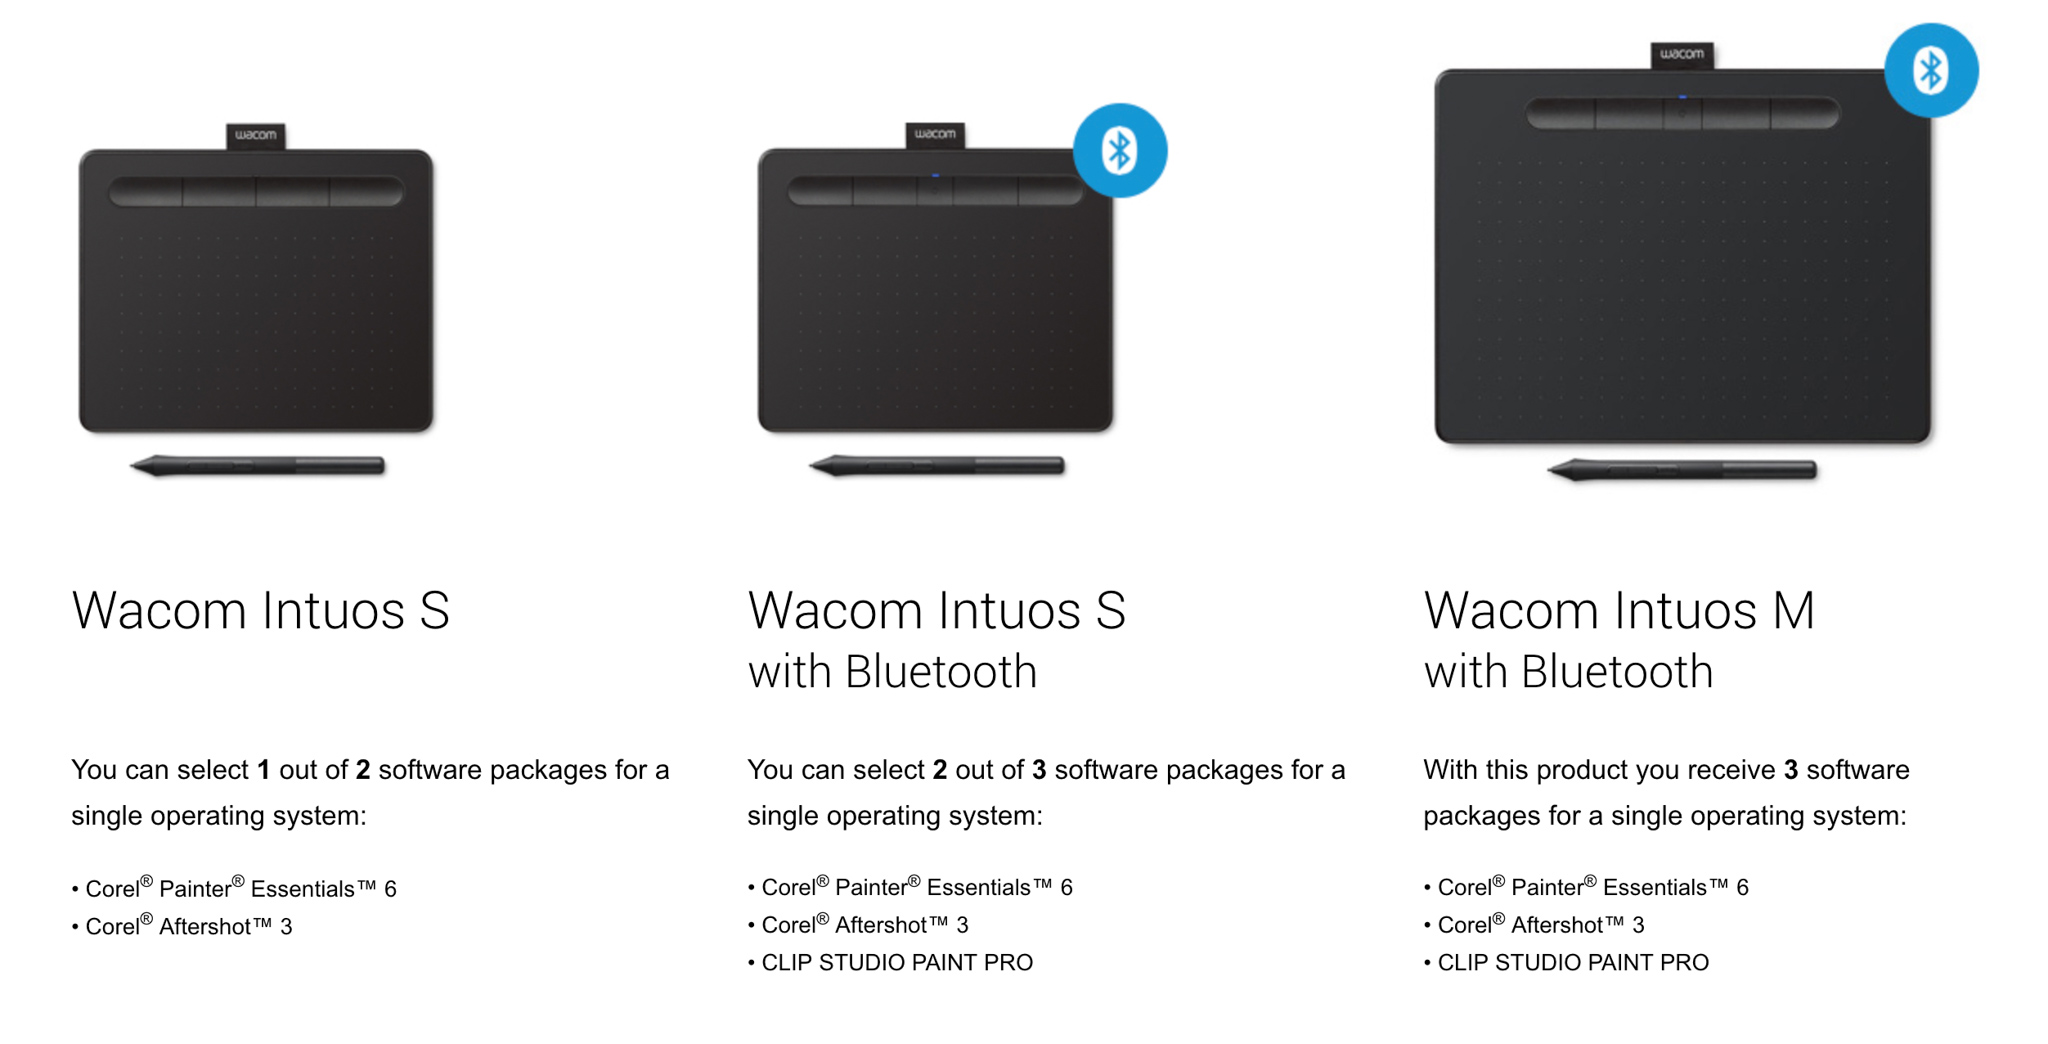 Fascinating Wacom Announced A Significantly Upgraded Version Beginners Softwarefor Wacom Significantly Upgrades Intuos Intro Line Bundled Its Intuospen Tablet Size dpreview Wacom Intuos Pen